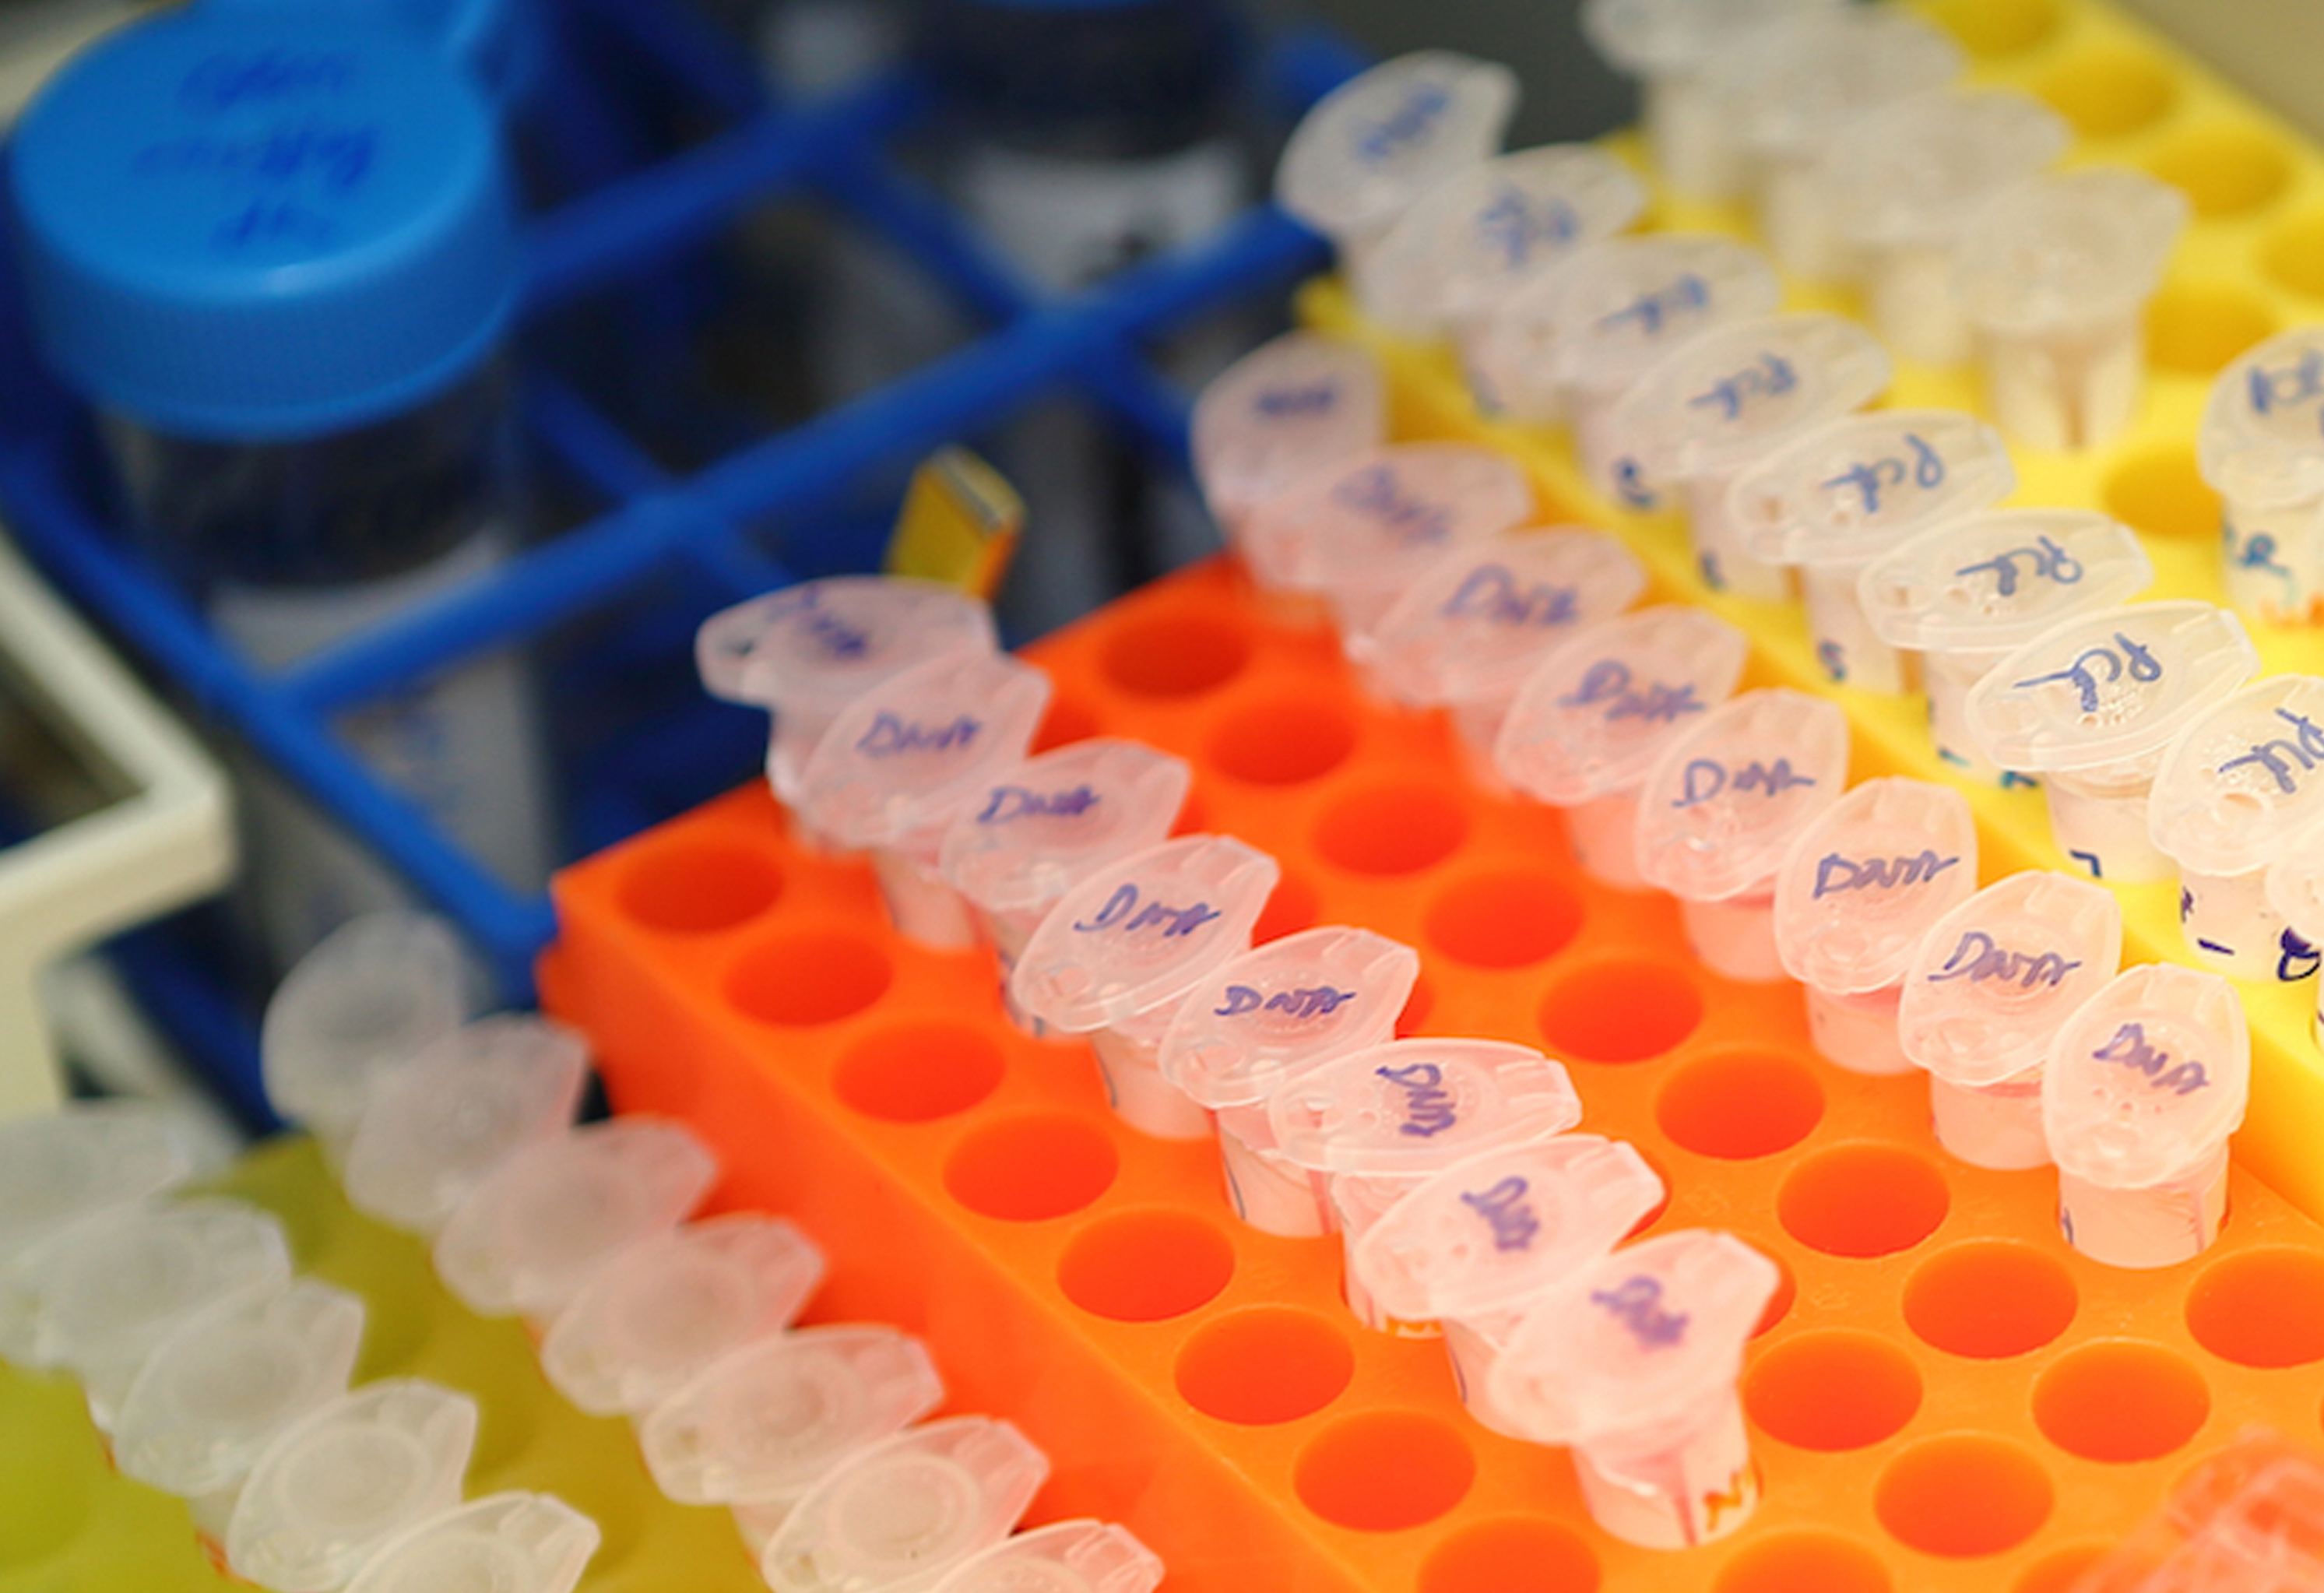 Biological samples held in a biobank. (Stock image courtesy of CRG.)